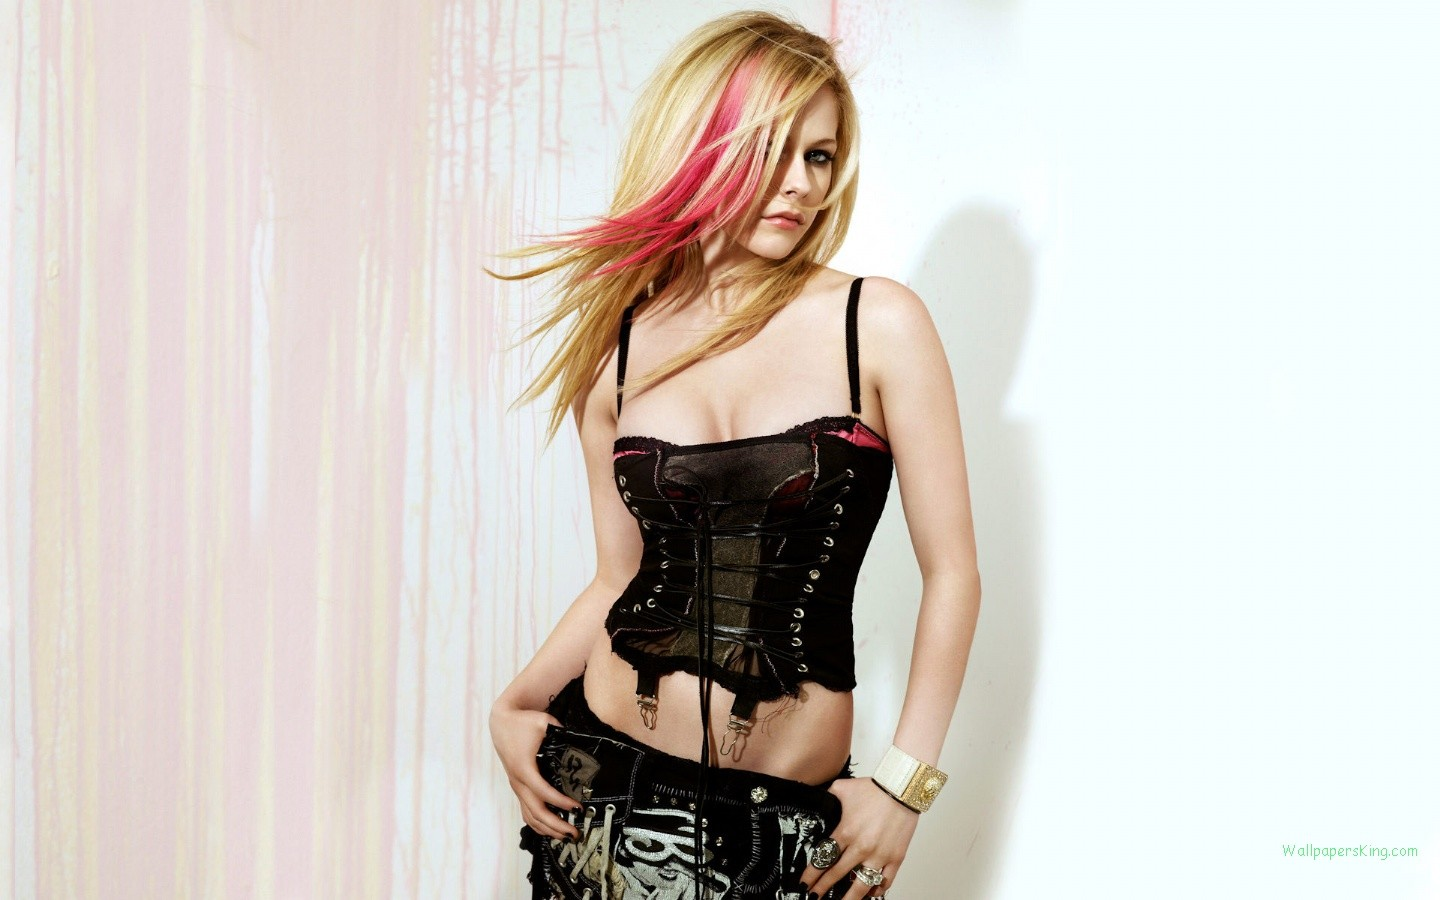 avril_lavigne_desktop_1440x900_hd-wallpaper-907385.jpg